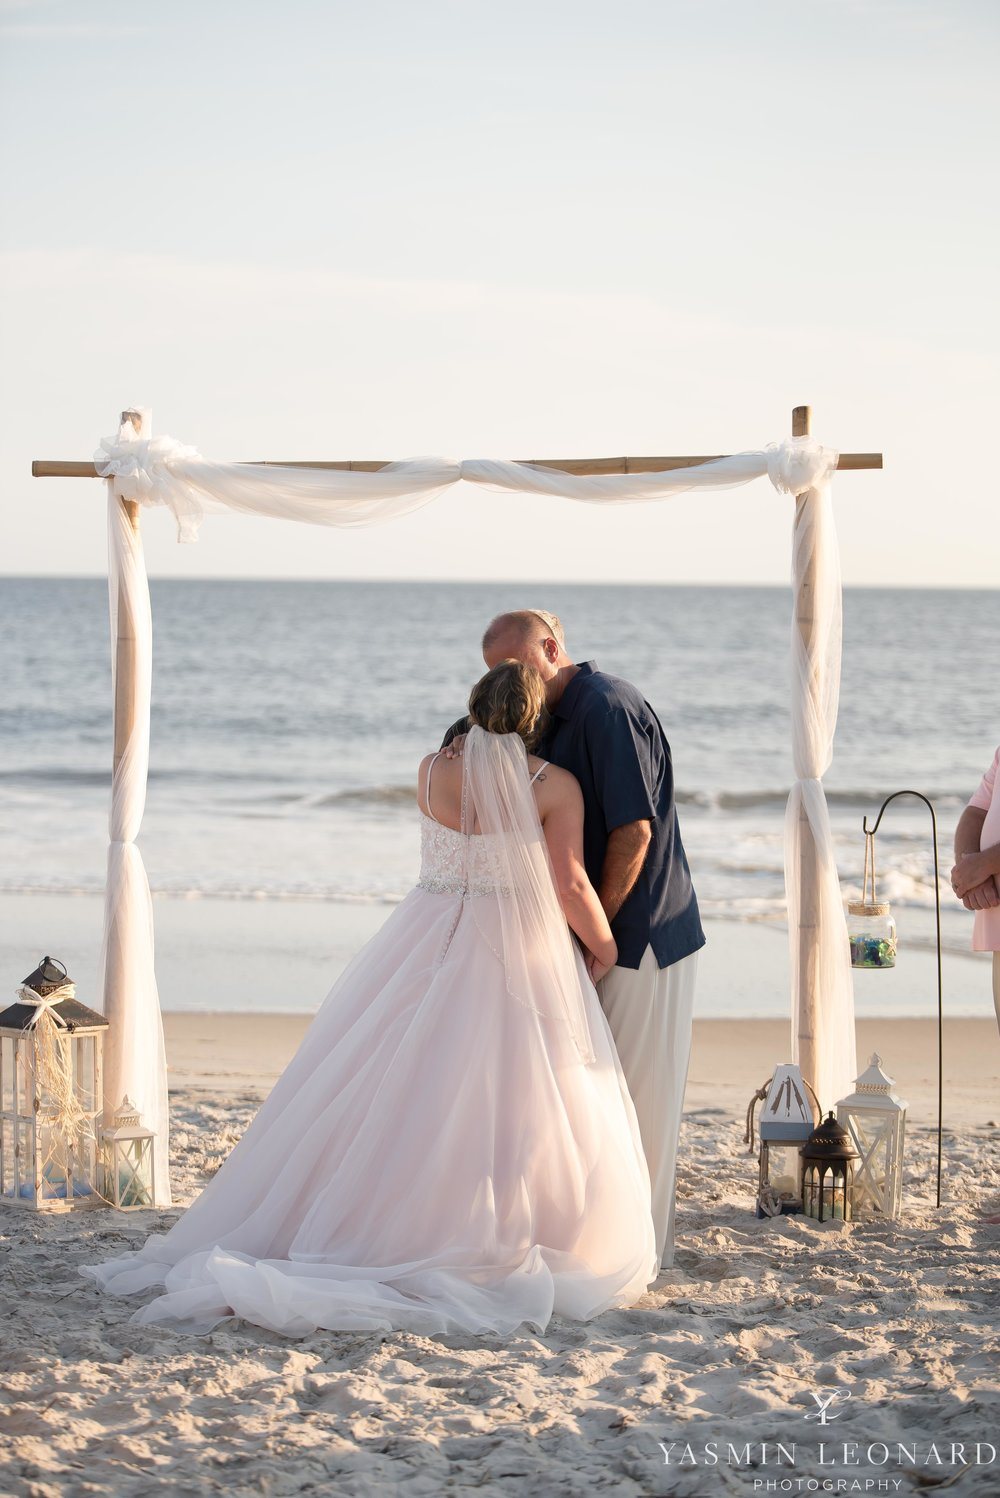 Oak Island _ Oak Island Wedding _ Beach Wedding_NC Beach Wedding_NC Destination Photographer_NC Wedding Photographer_Yasmin Leonard Photography_Beach Themed Wedding-28.jpg